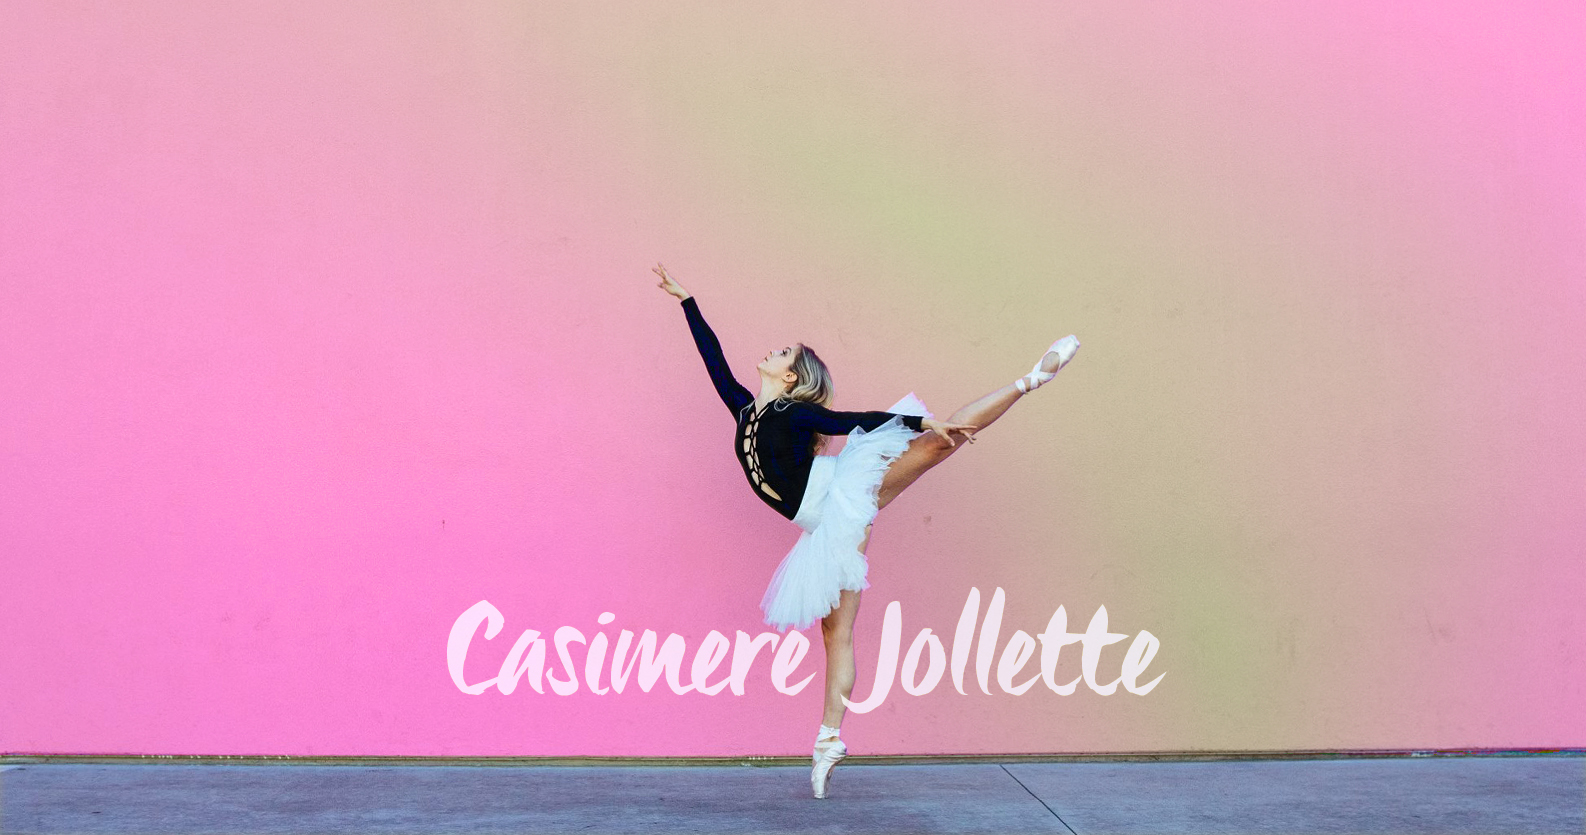 casimere jollette